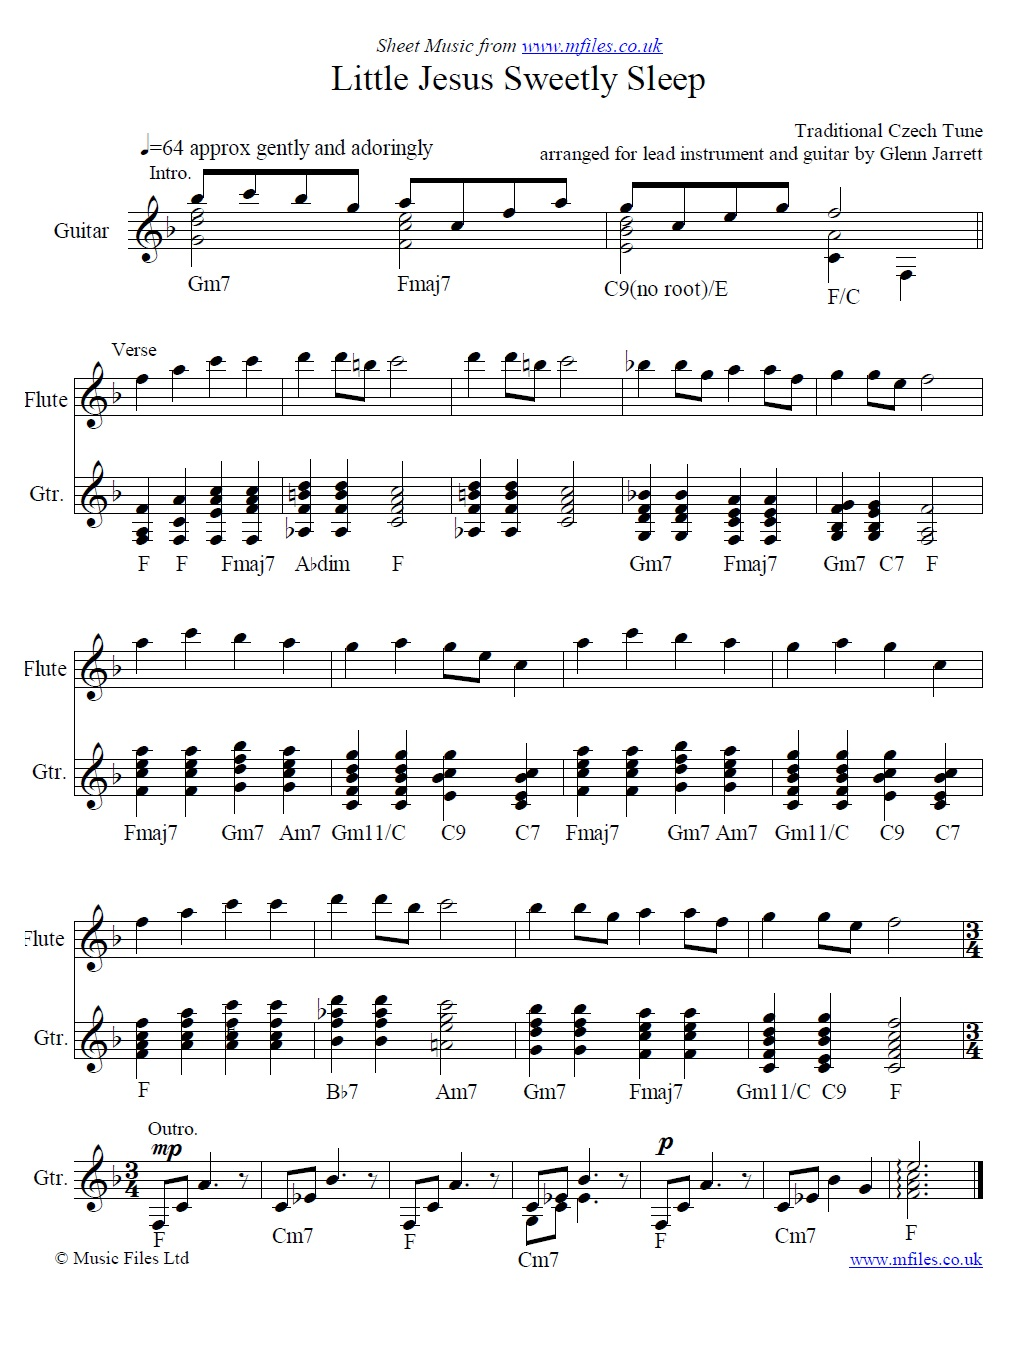 Rocking Carol (Little Jesus Sweetly Sleep) arranged by Glenn Jarrett for flute and guitar - sheet music 1st page